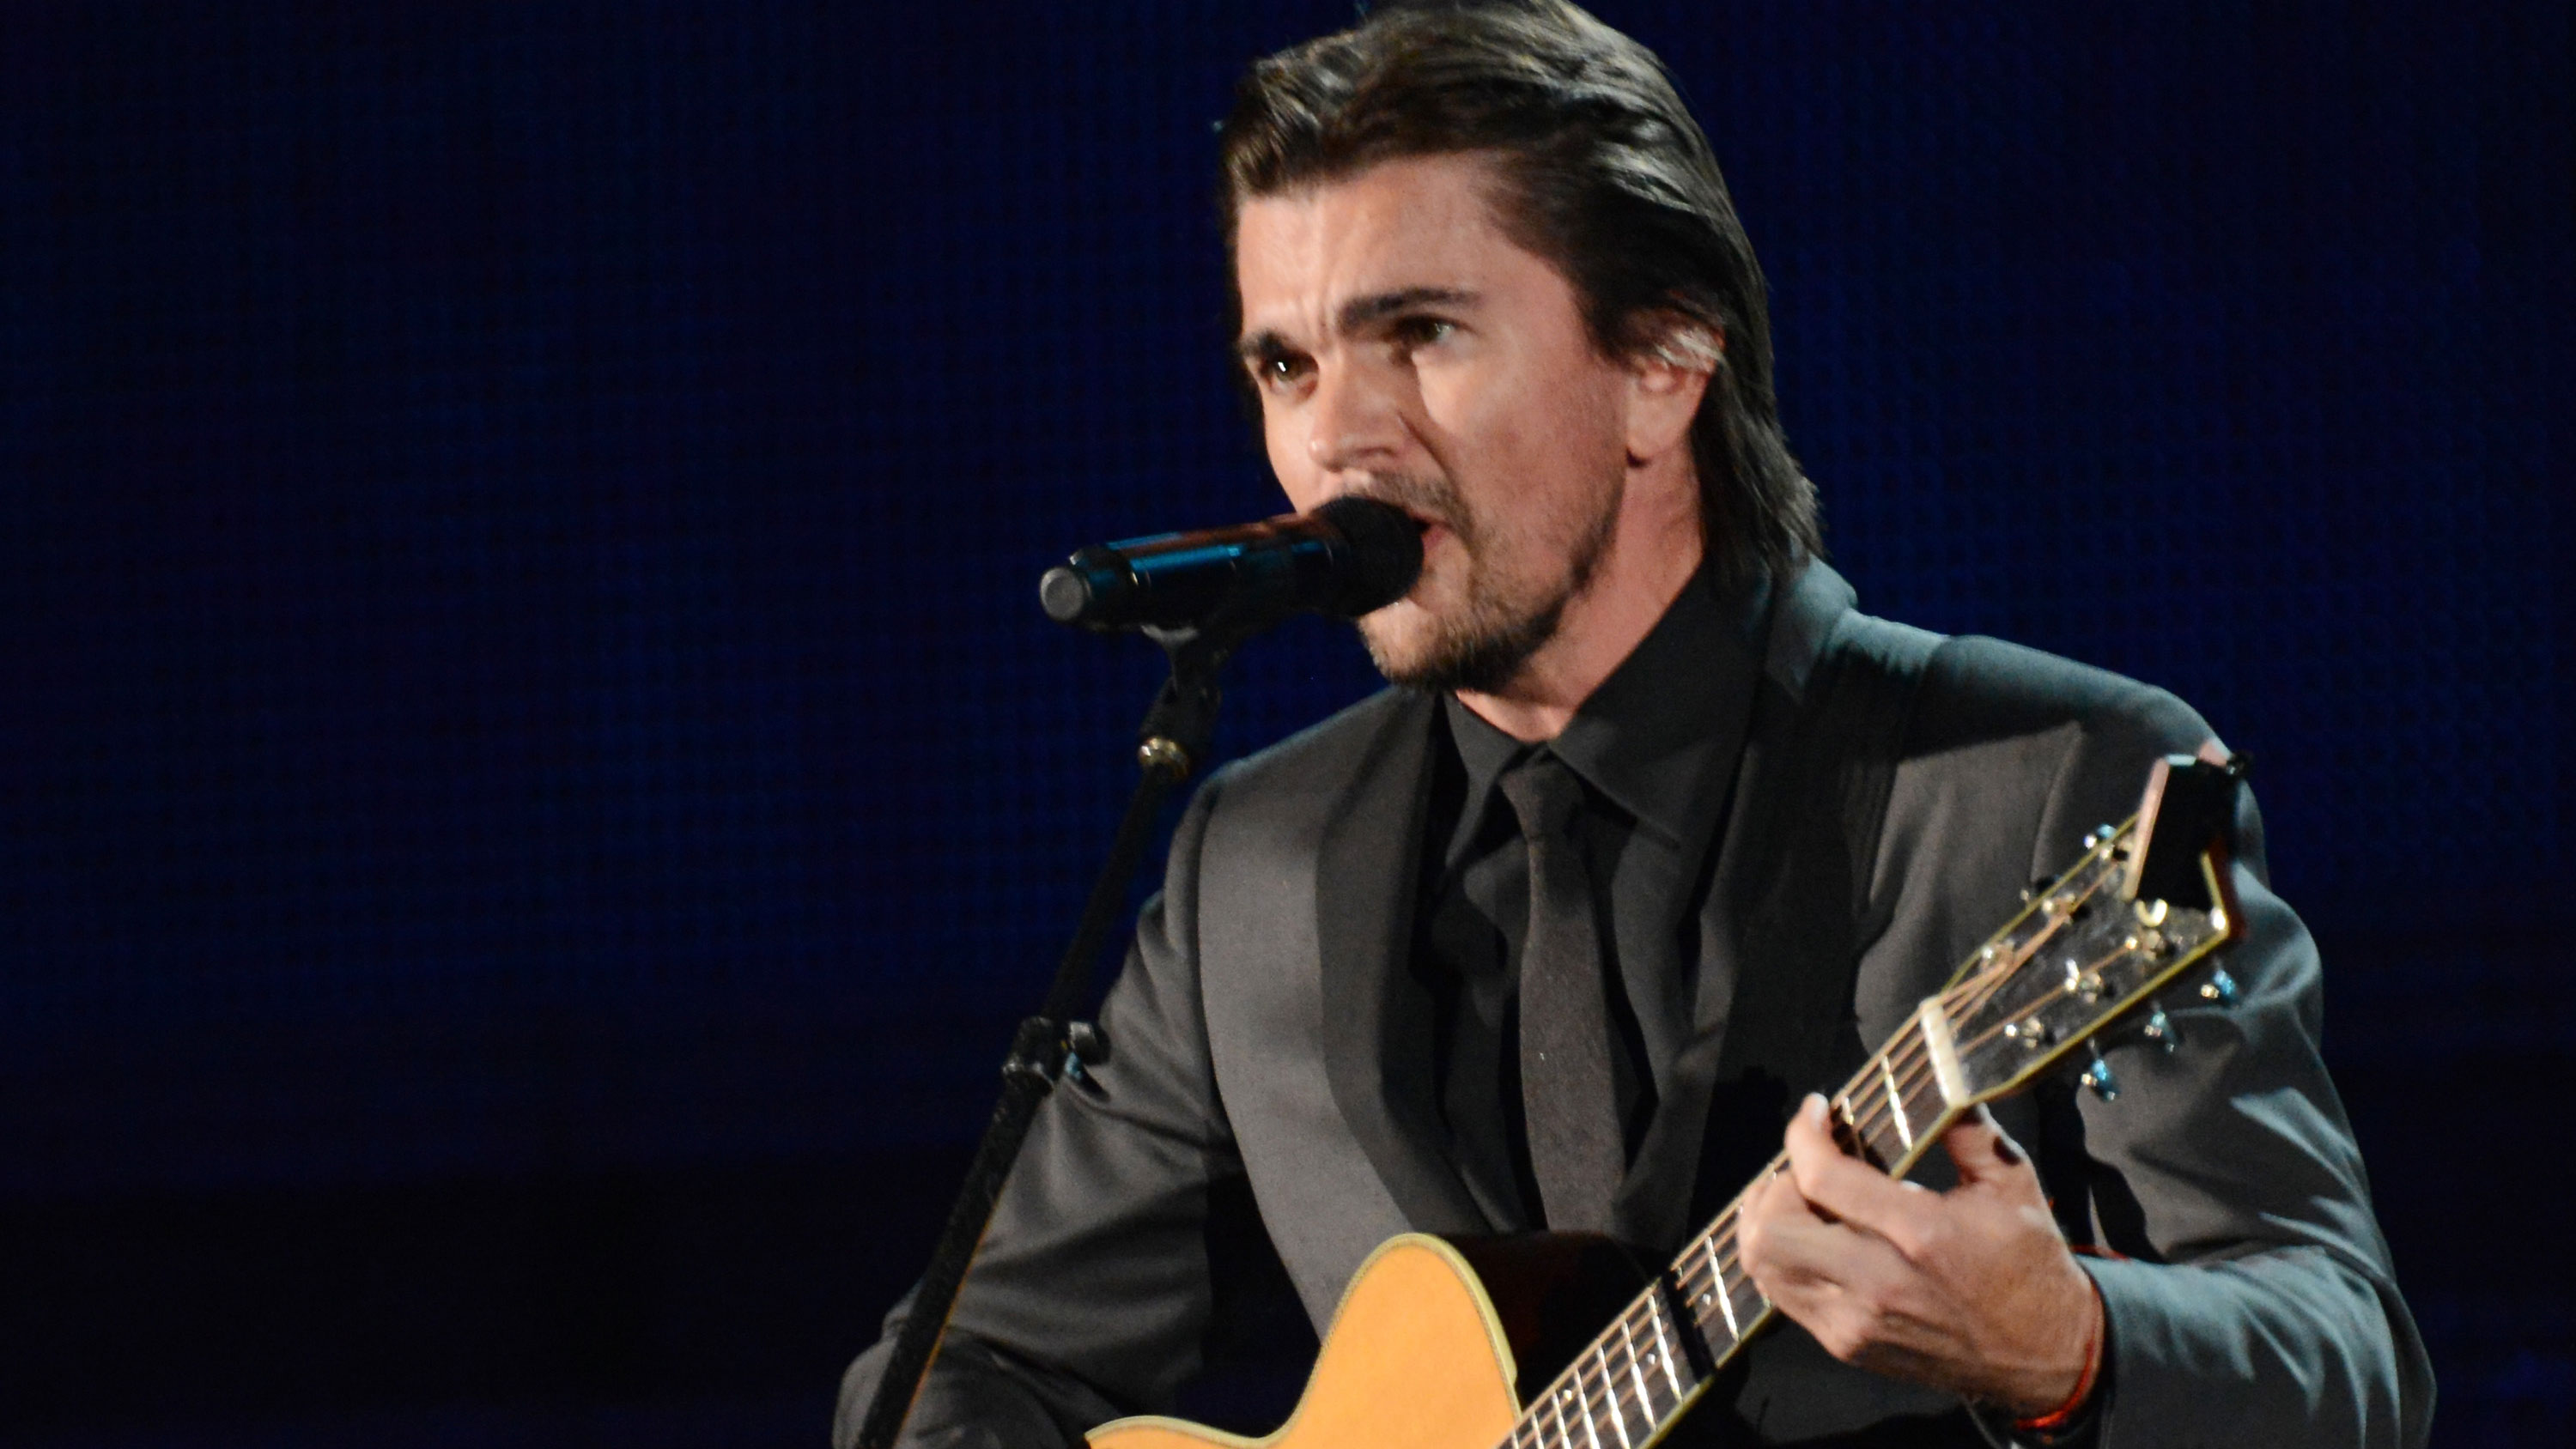 """PHOTO: Juanes continues the """"camisa negra"""" theme."""